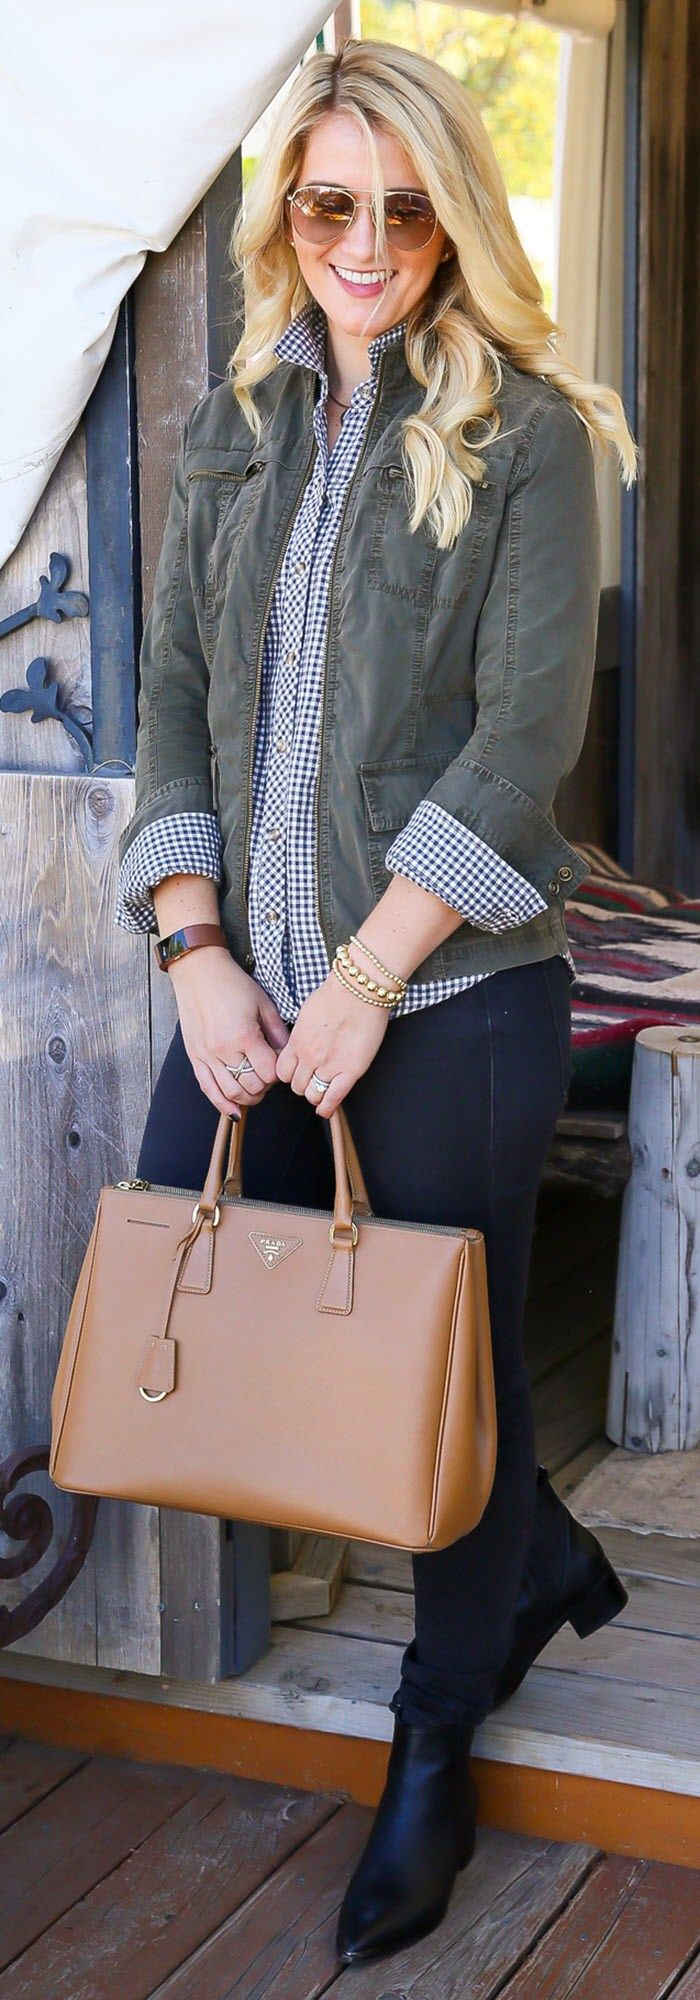 Flannel shirt outfit women  How to Dress Up Flannel Shirts with Jeans Outfit for Women Fall